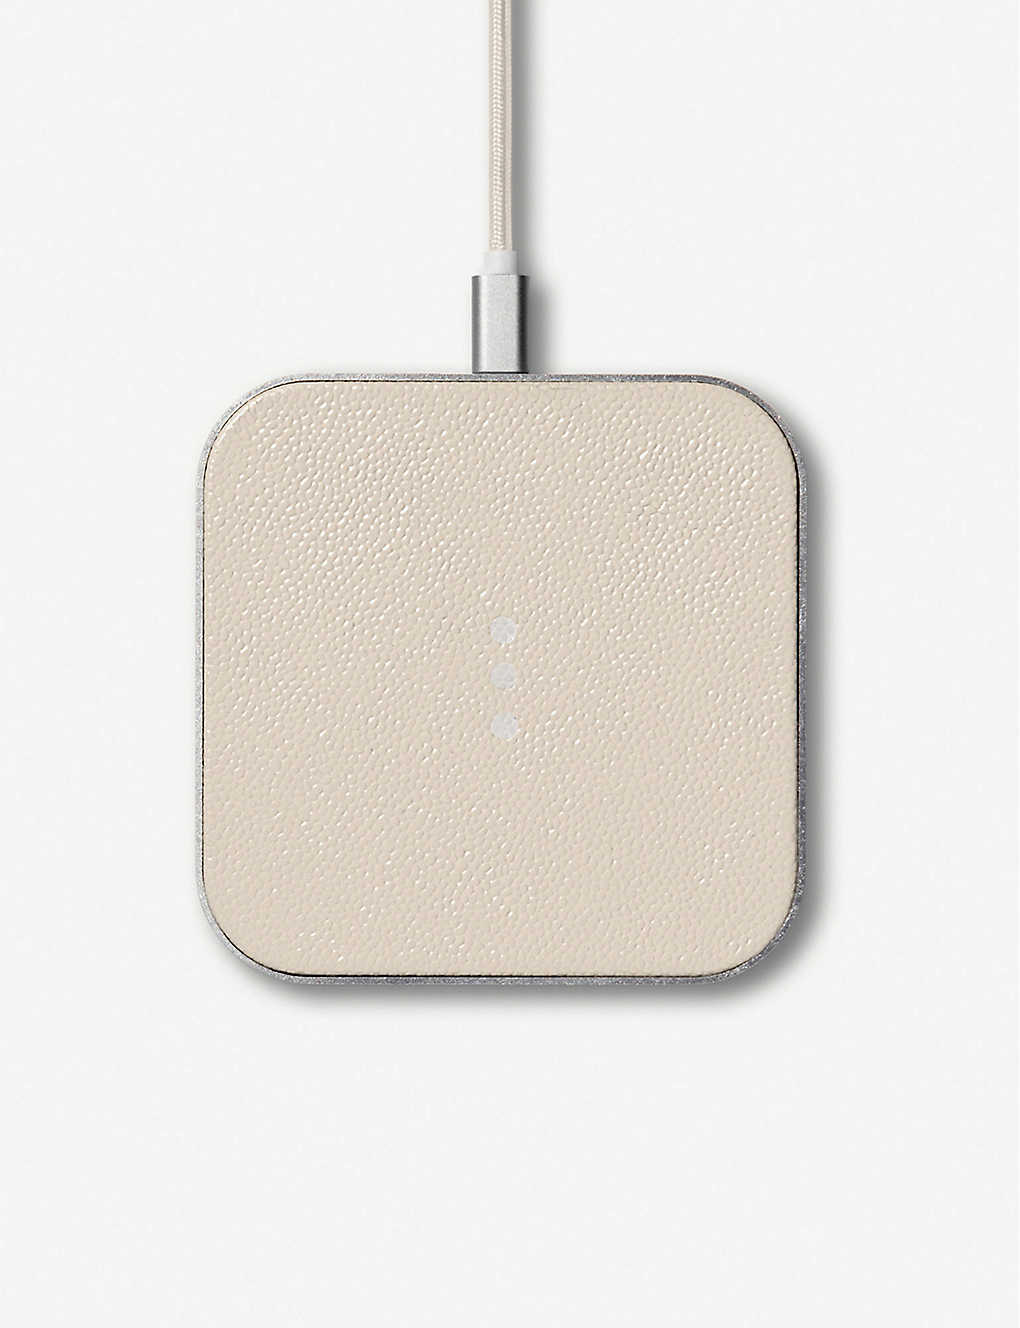 SMARTECH: Courant Catch 1 wireless charger